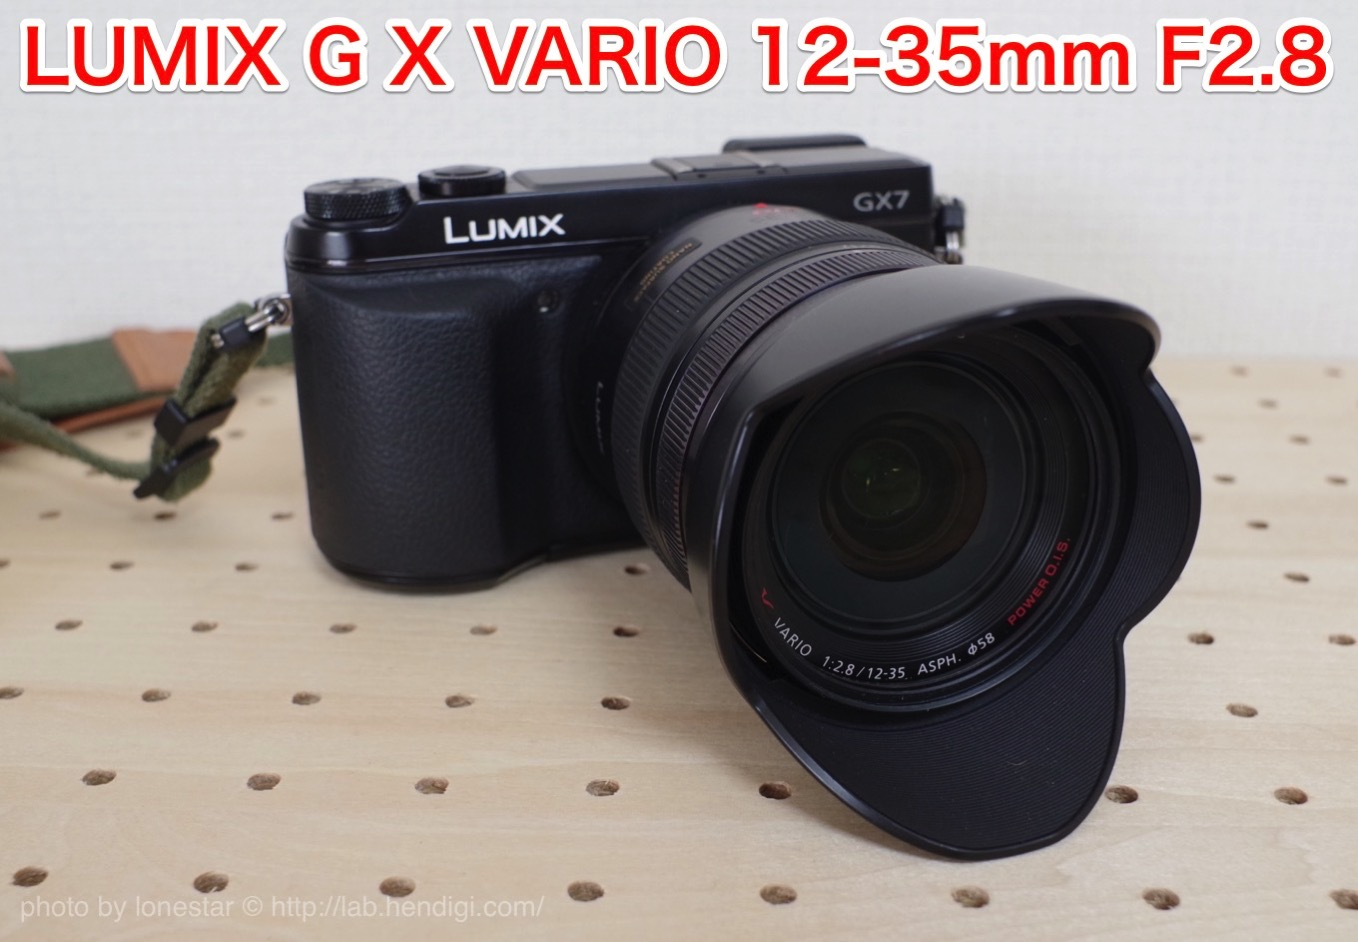 LUMIX-G-X-VARIO-12-35mm-F2.8